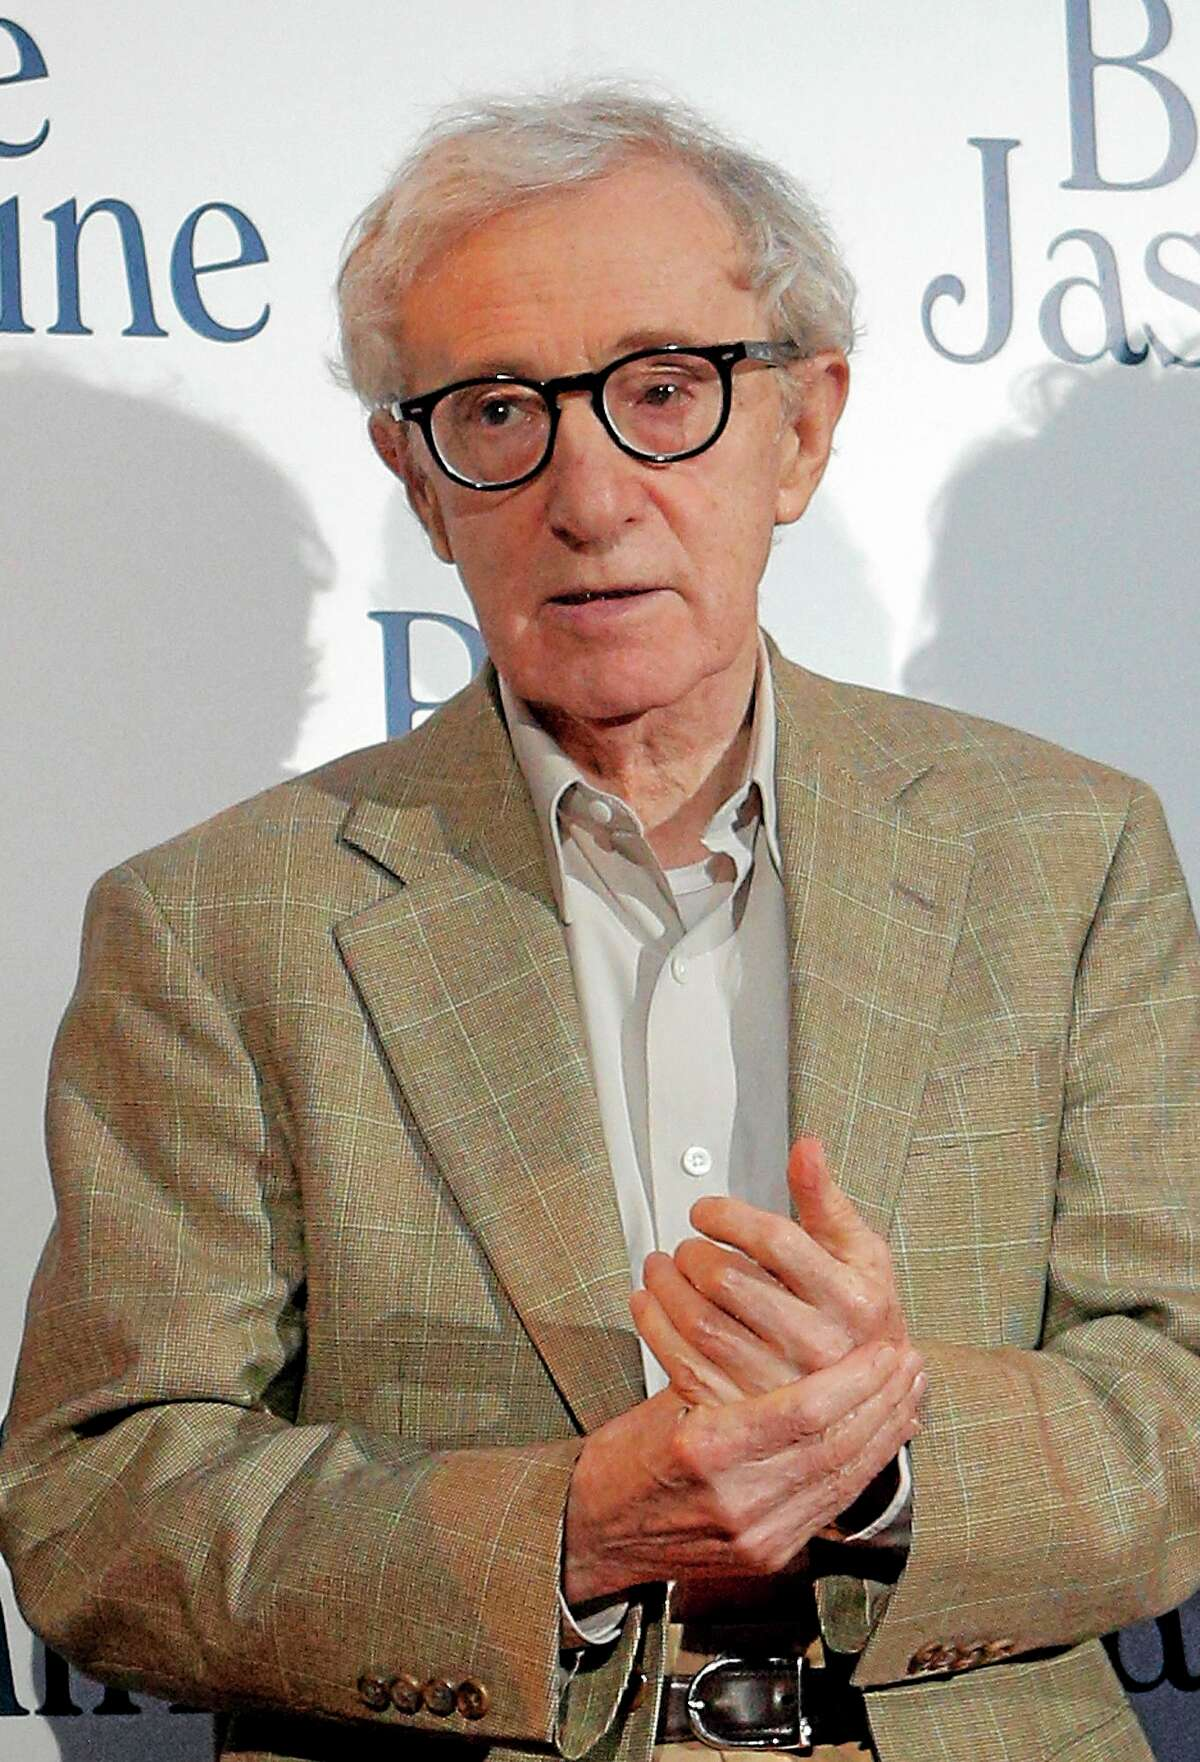 """This Aug. 27, 2013 file photo shows director and actor Woody Allen at the French premiere of """"Blue Jasmine,"""" in Paris. In an Op-Ed piece by Nicholas Kristof published on the New York Times website on Saturday, Feb. 1, 2014, the author referenced a letter by Allenís adopted daughter Dylan Farrow, 28, that he posted on his blog, detailing how she was molested by Allen while growing up. AP Photo/Christophe Ena"""